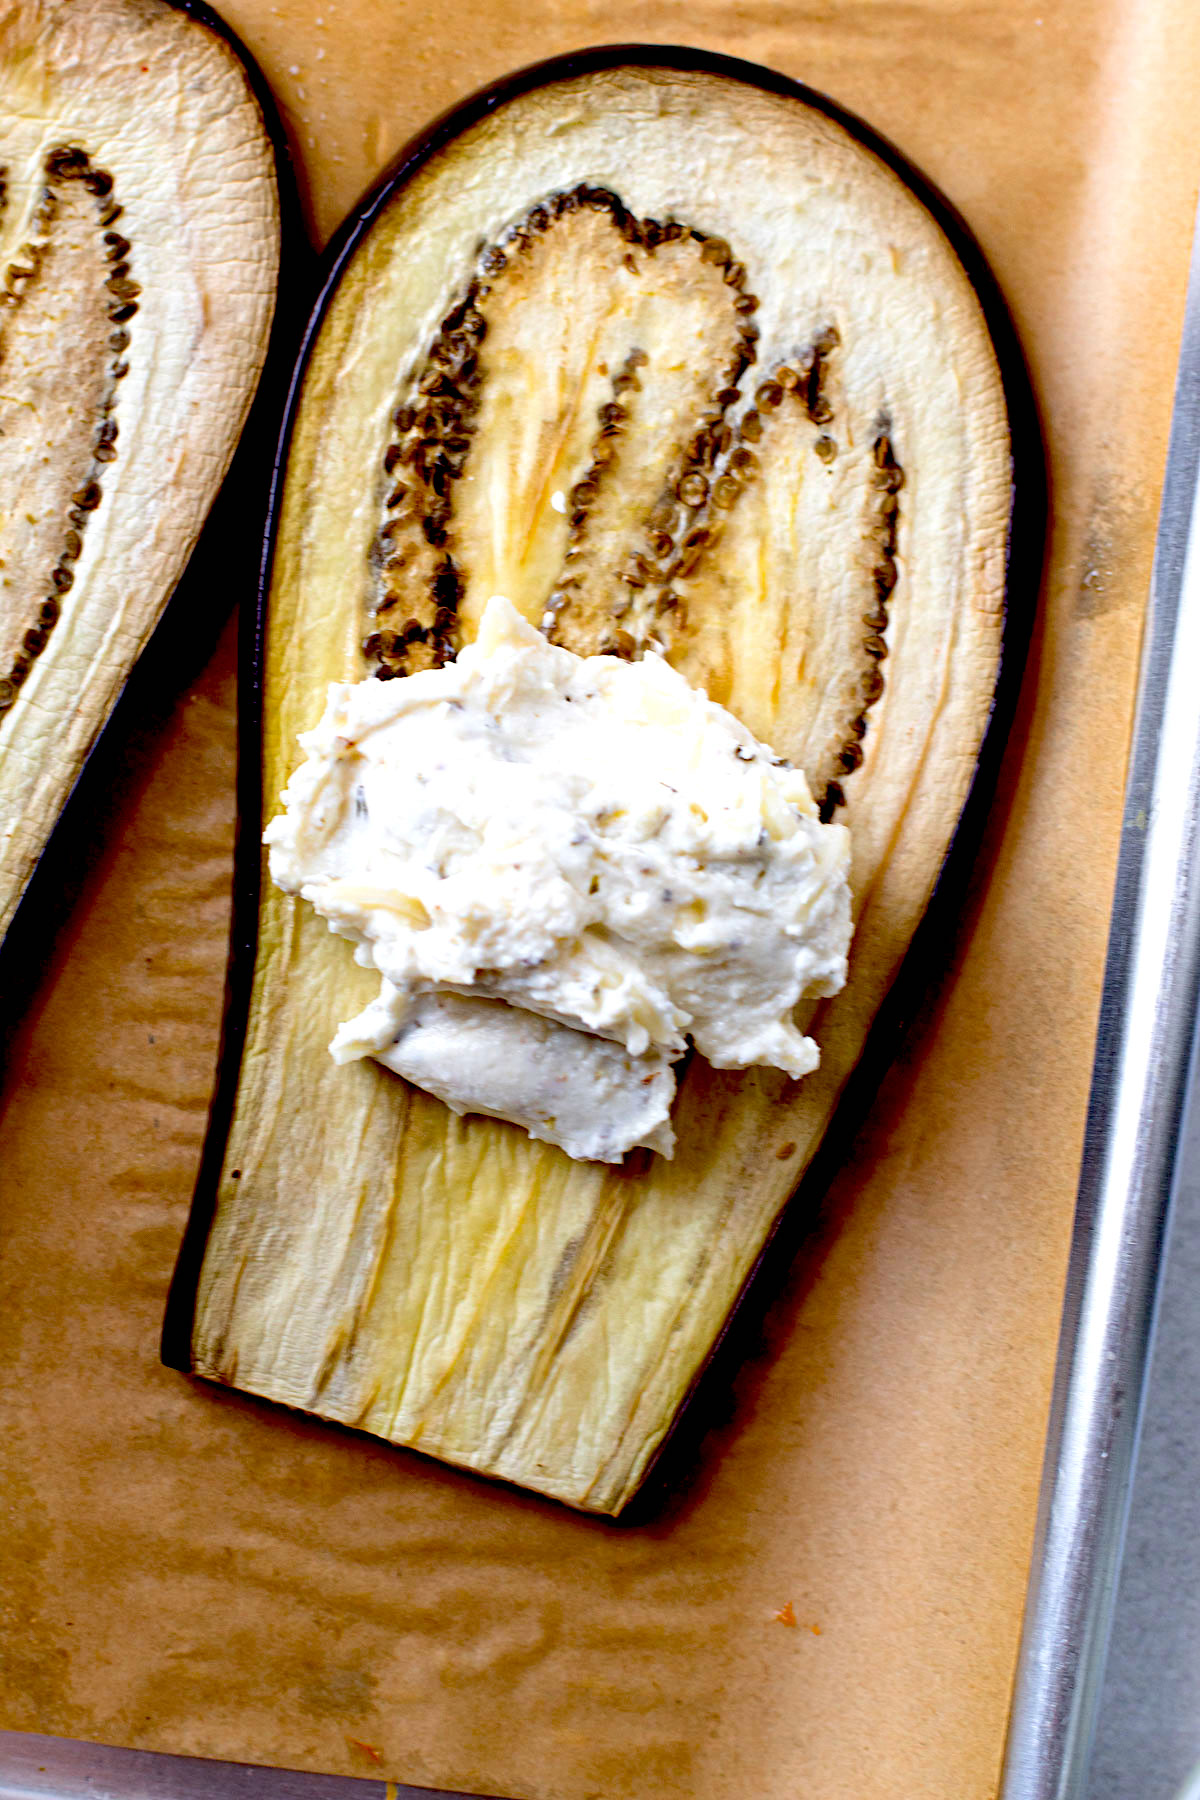 A baked eggplant with a scoop of ricotta cheese.